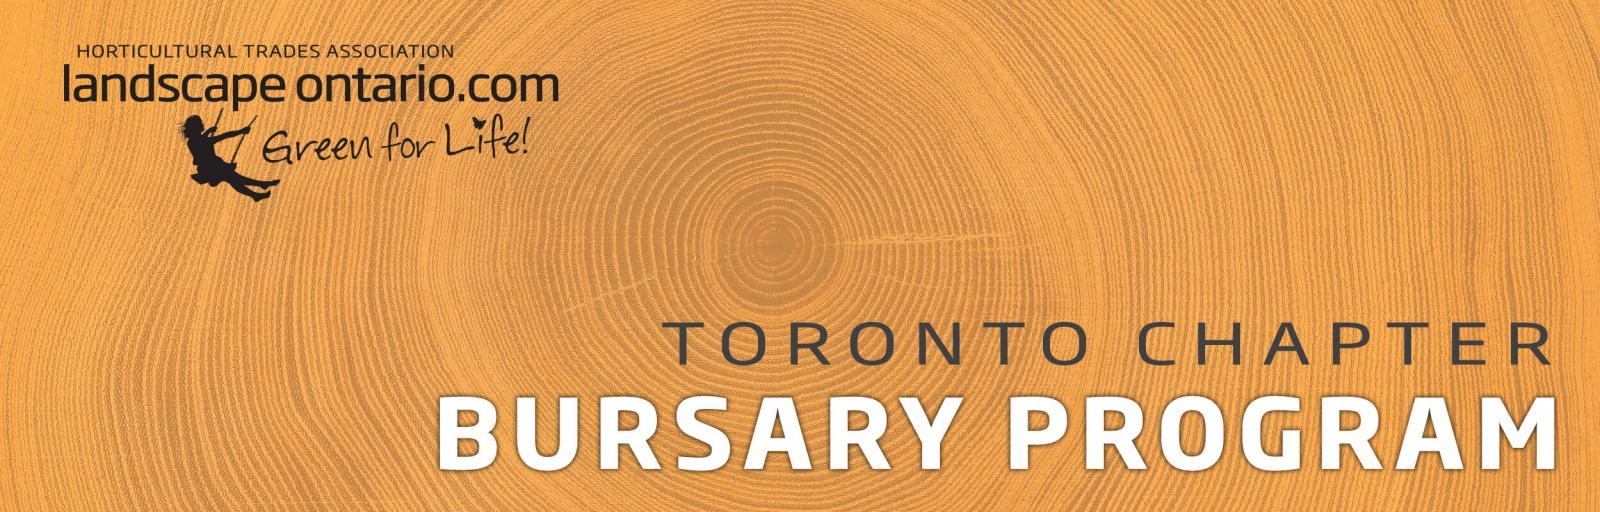 LO Toronto Chapter Bursary